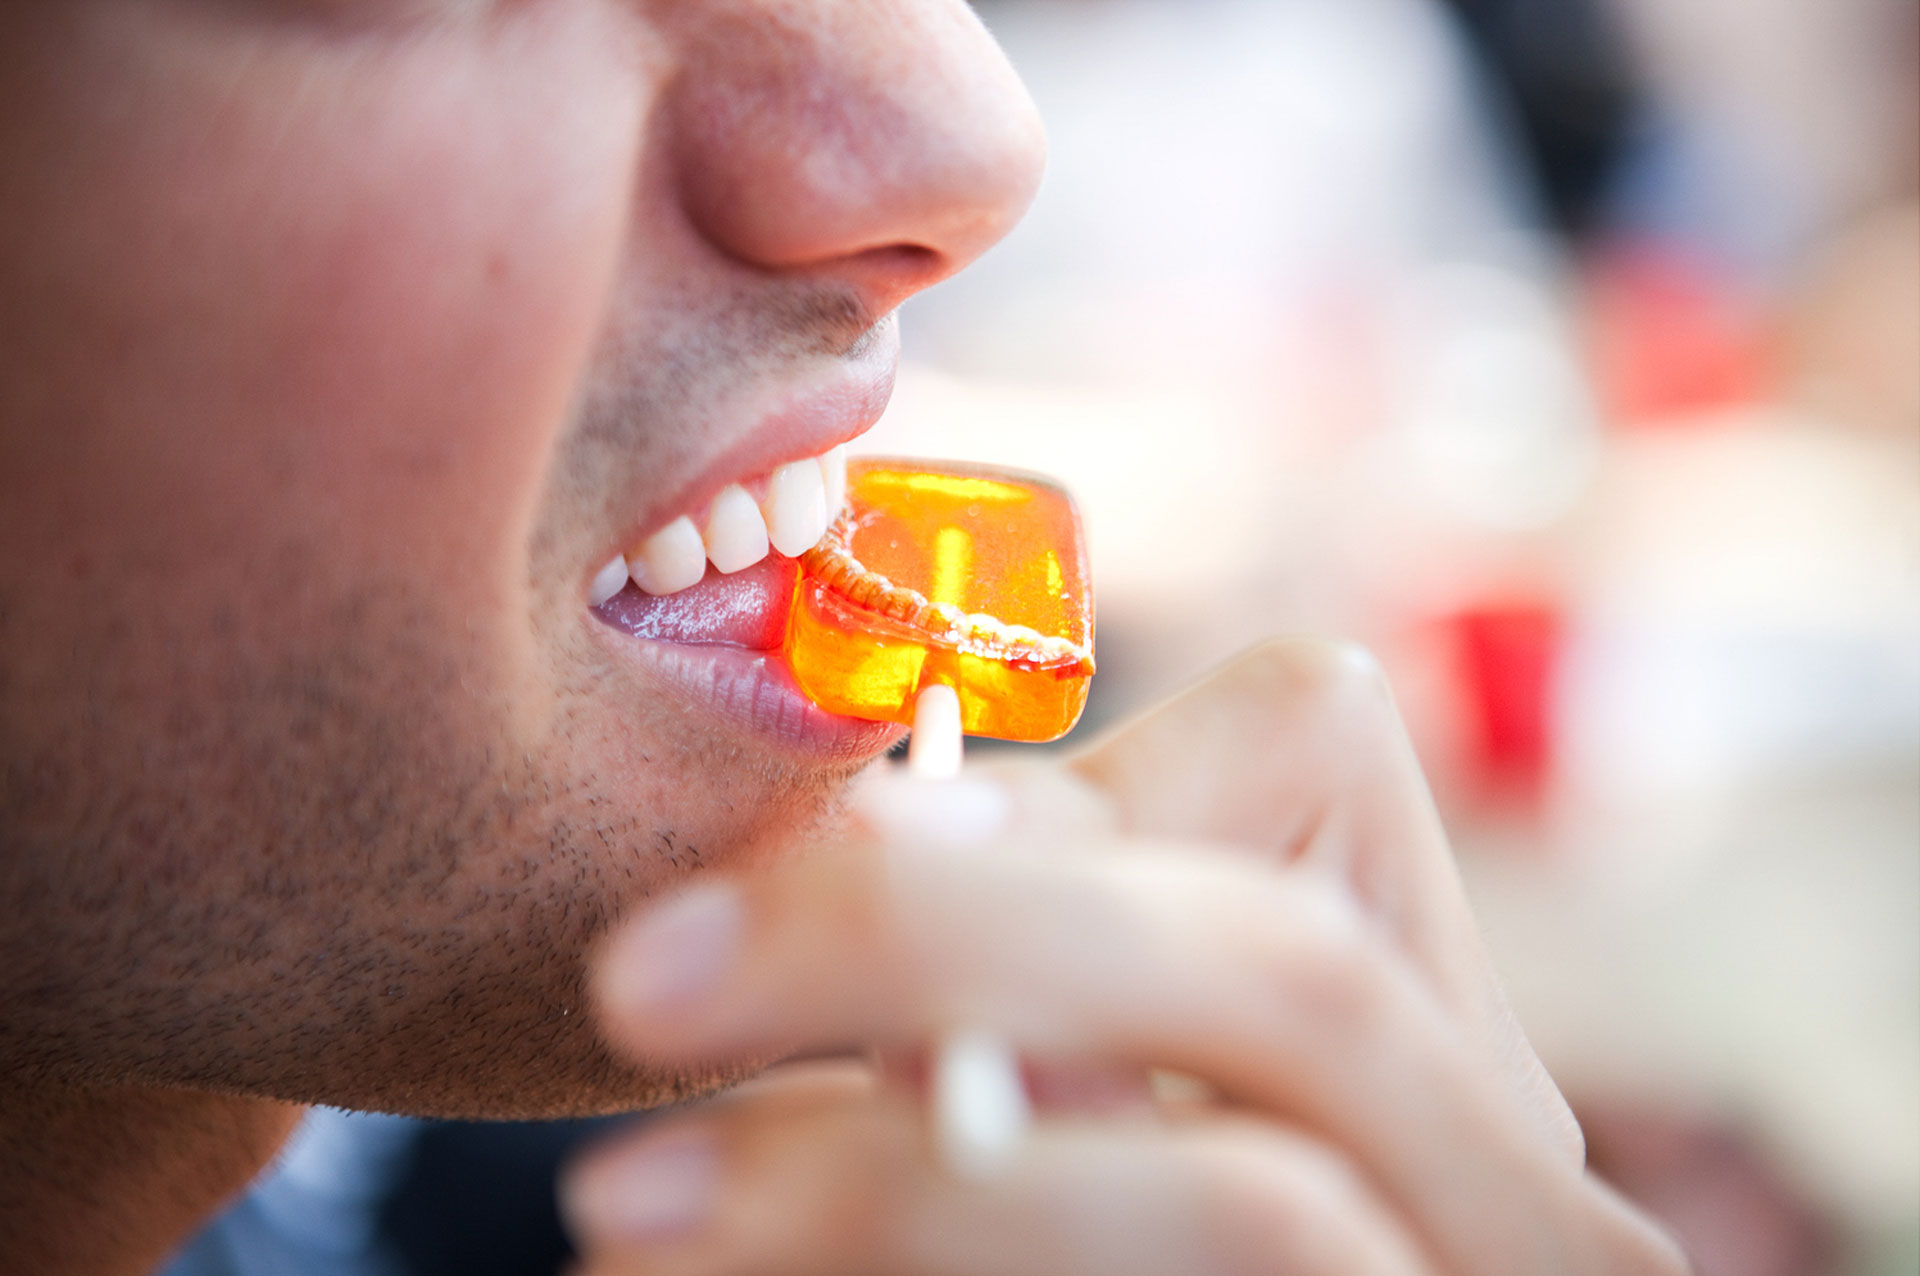 Matt Schnarr bites into a mealworm lollipop at the Pestaurant event in Washington, D.C., in 2014.